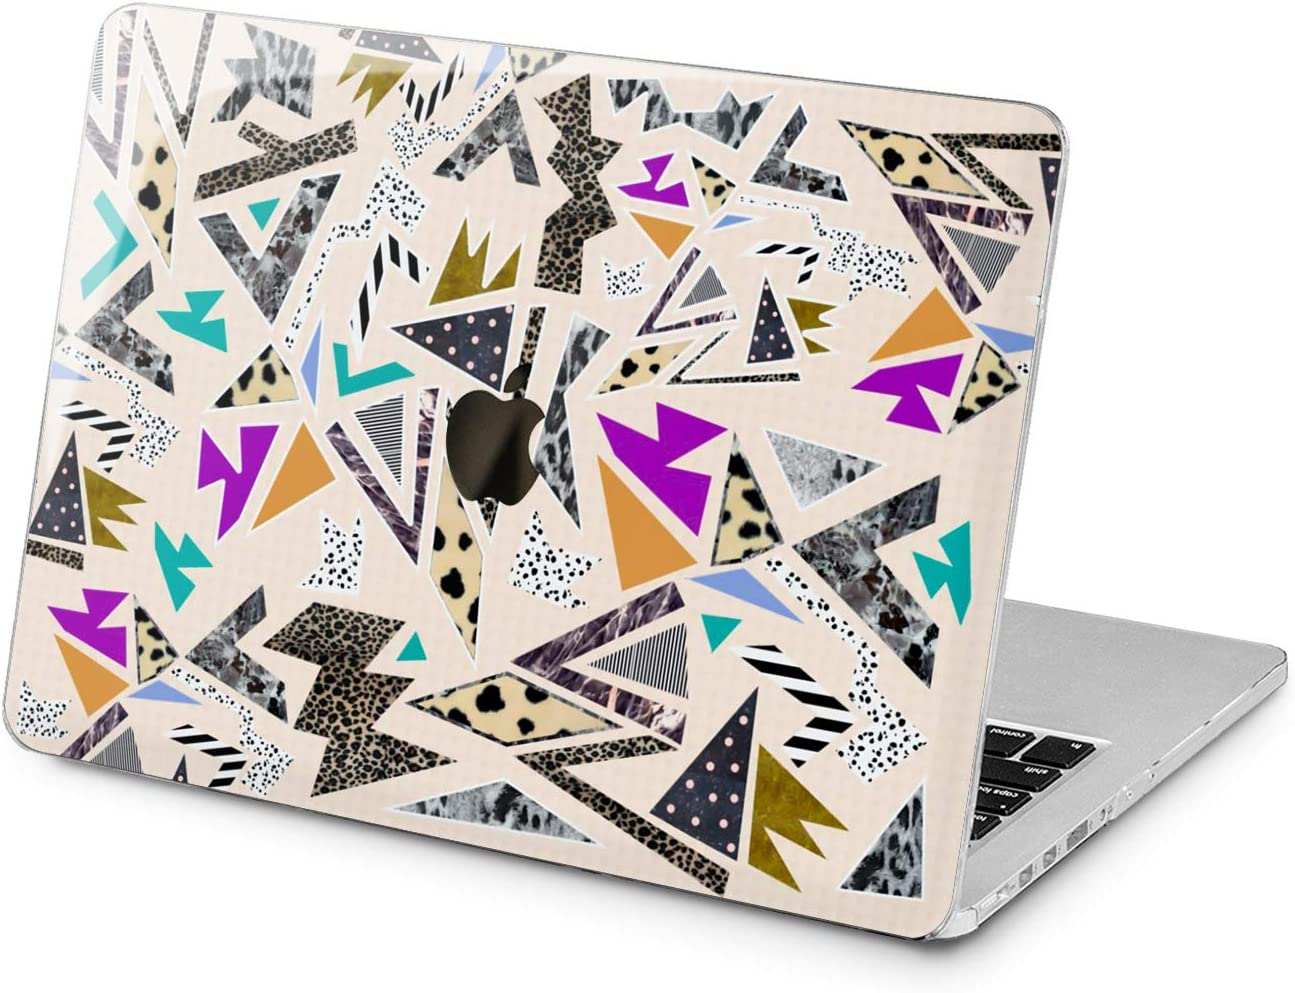 "Cavka Hard Shell Case for Apple MacBook Pro 13"" 2019 15"" 2018 Air 13"" 2020 Retina 2015 Mac 11"" Mac 12"" Geometric Pattern 90s Design Fashion Print Plastic Leopard Art Cover Protective Laptop Abstract"